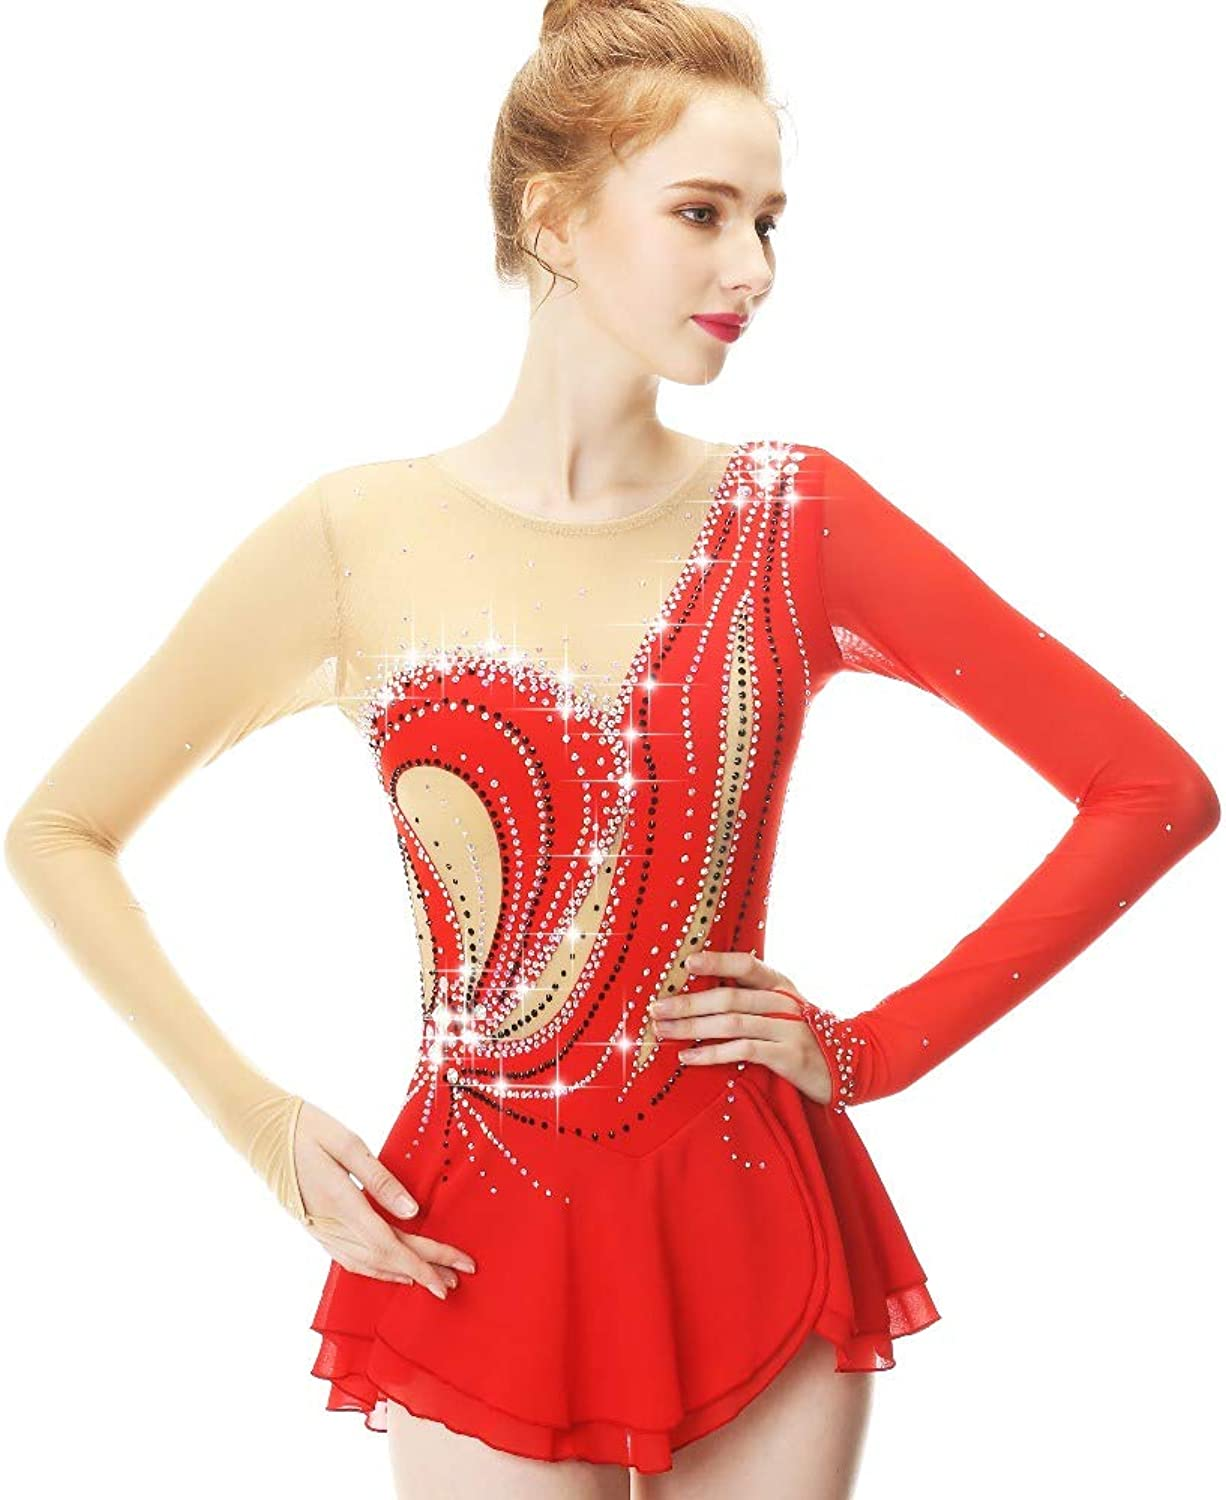 Handmade Ice Skating Dress for Girls and WomenFigure Skating Competition Costume Ice Dance Performance Show Leotards, Long Sleeved Crystals Tunic, Red